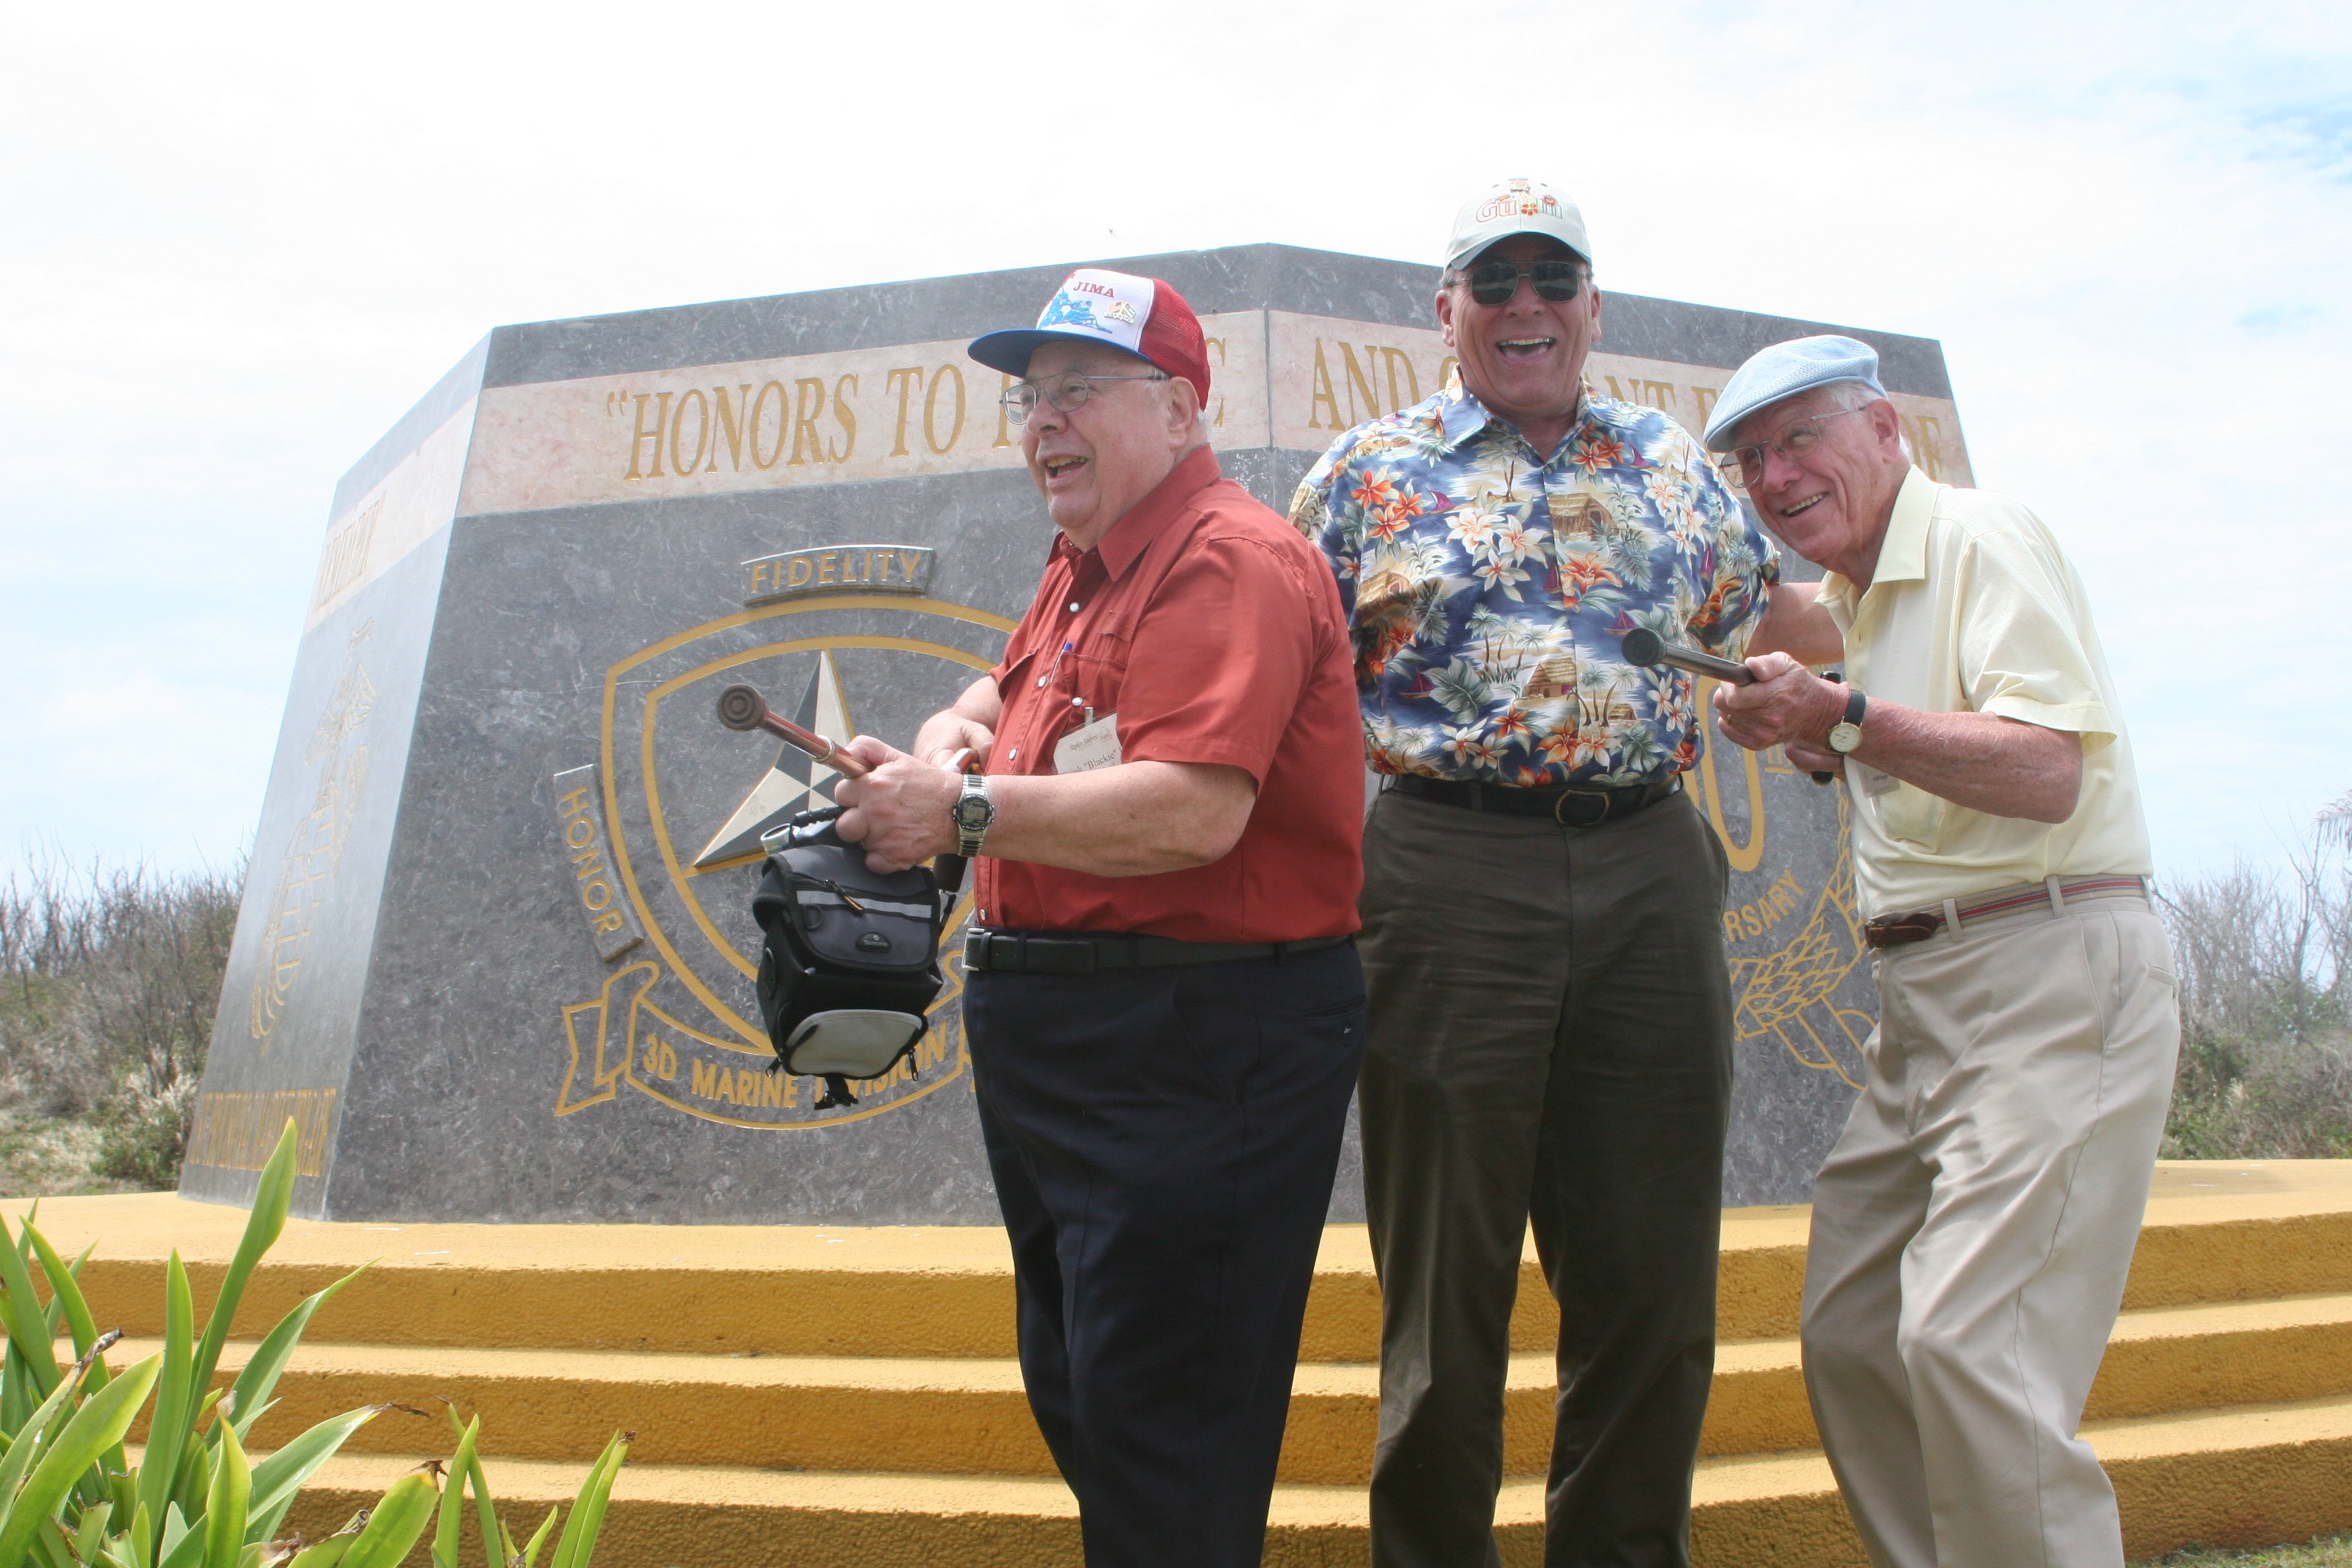 Ron Drez and veterans on the Iwo Jima tour having fun